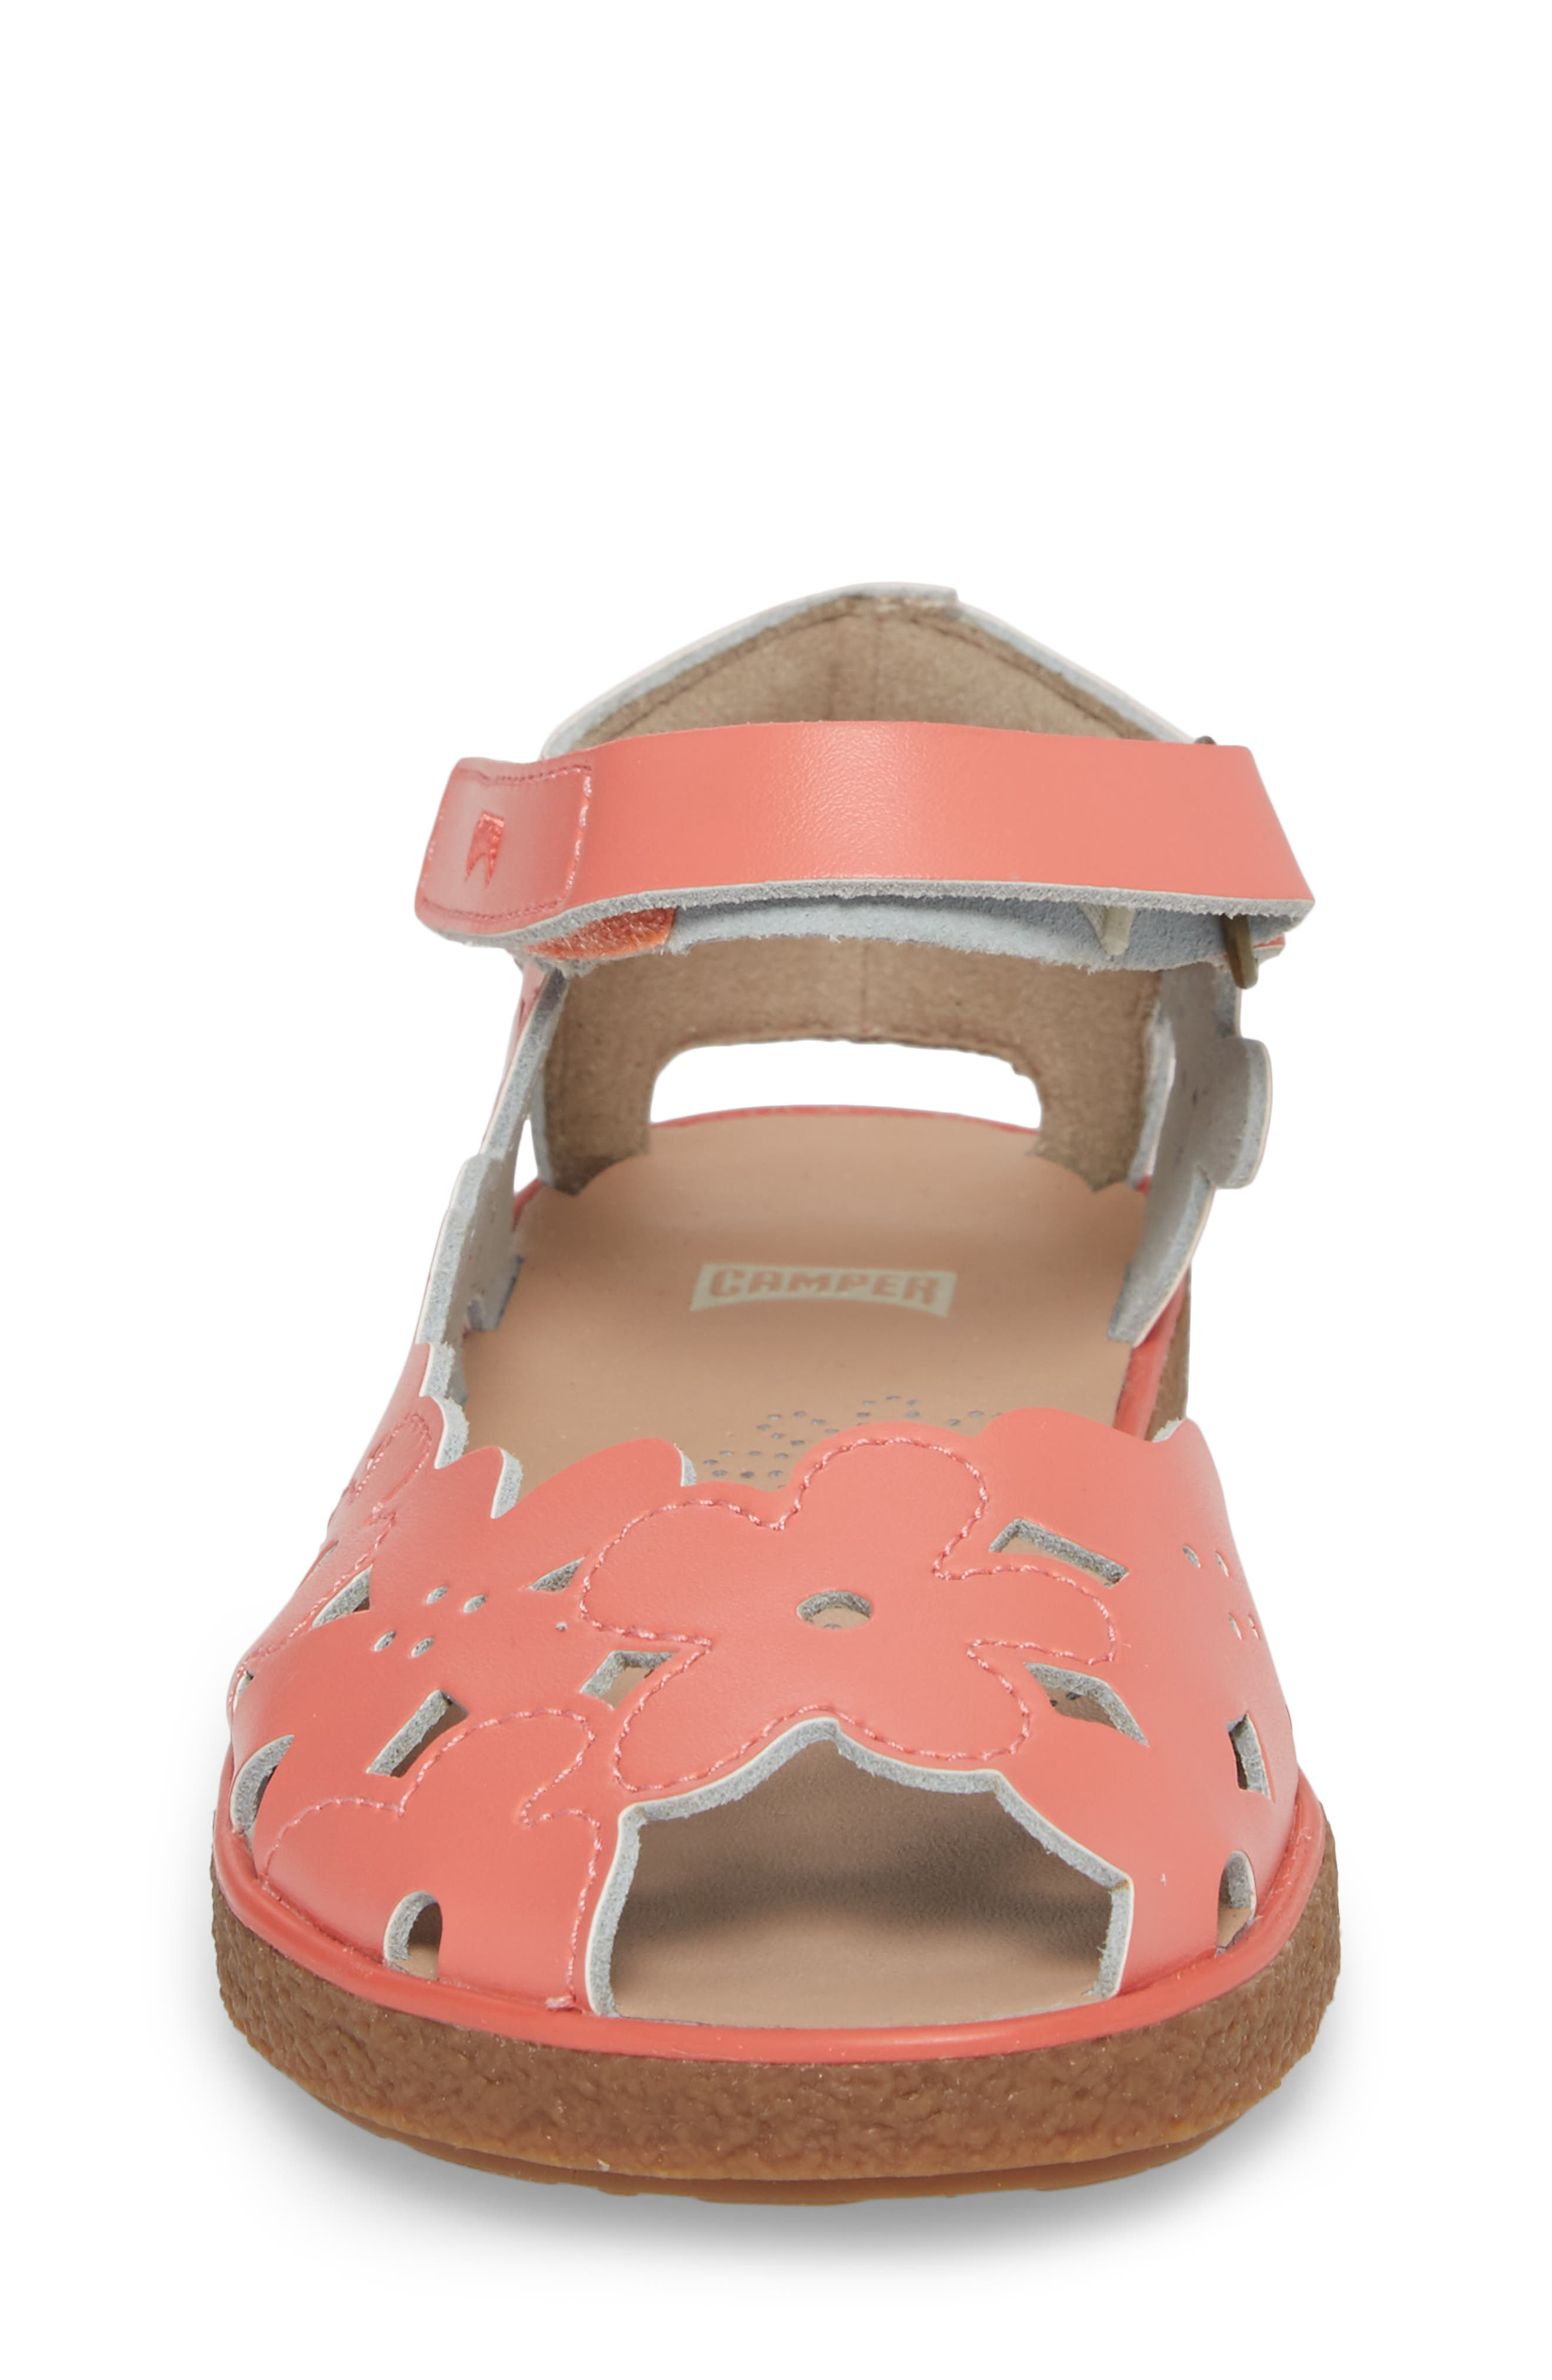 Twins Perforated Sandal,                             Alternate thumbnail 4, color,                             Pink